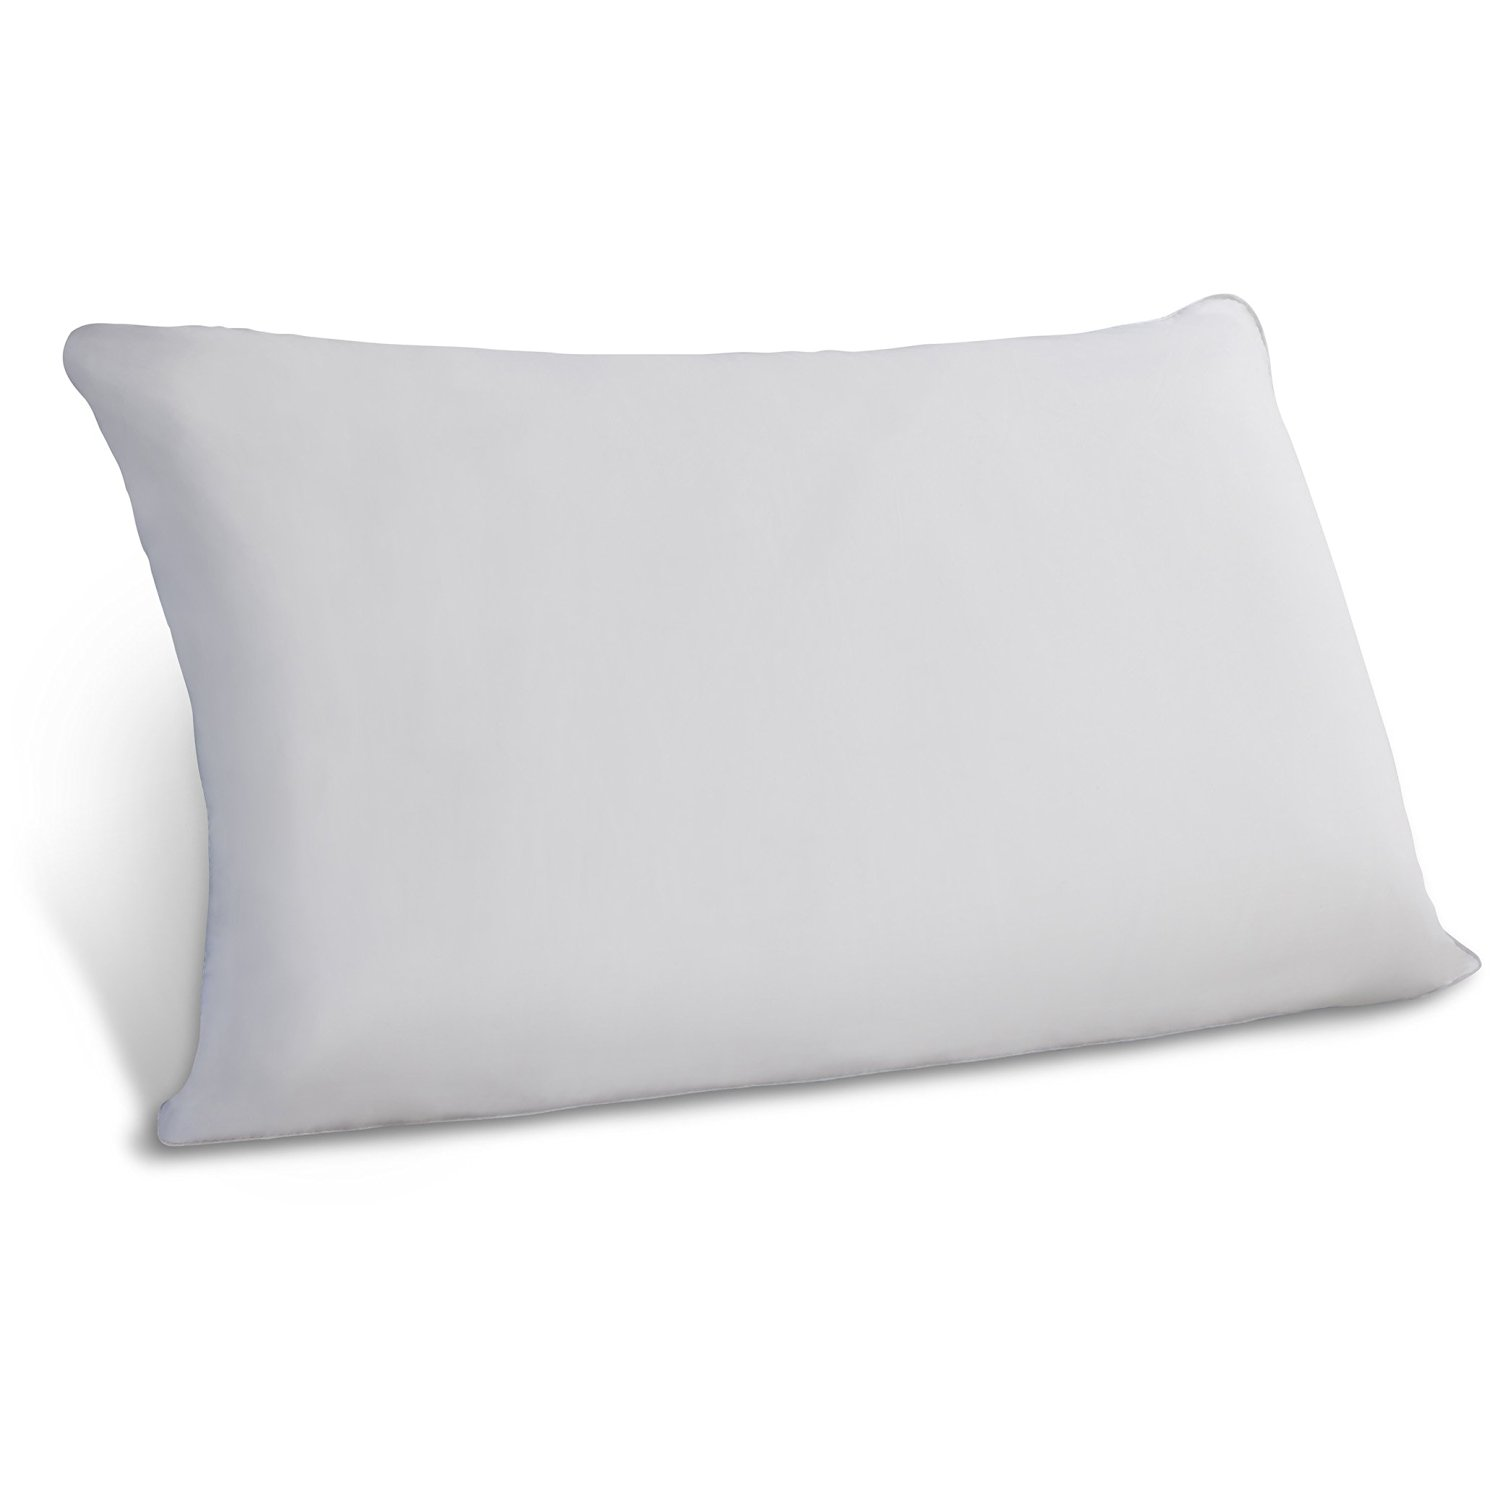 Hydraluxe Premium Molded Foam Bed Pillow Standard White Comfort Revolution cheap comfort revolution memory foam pillow, find comfort